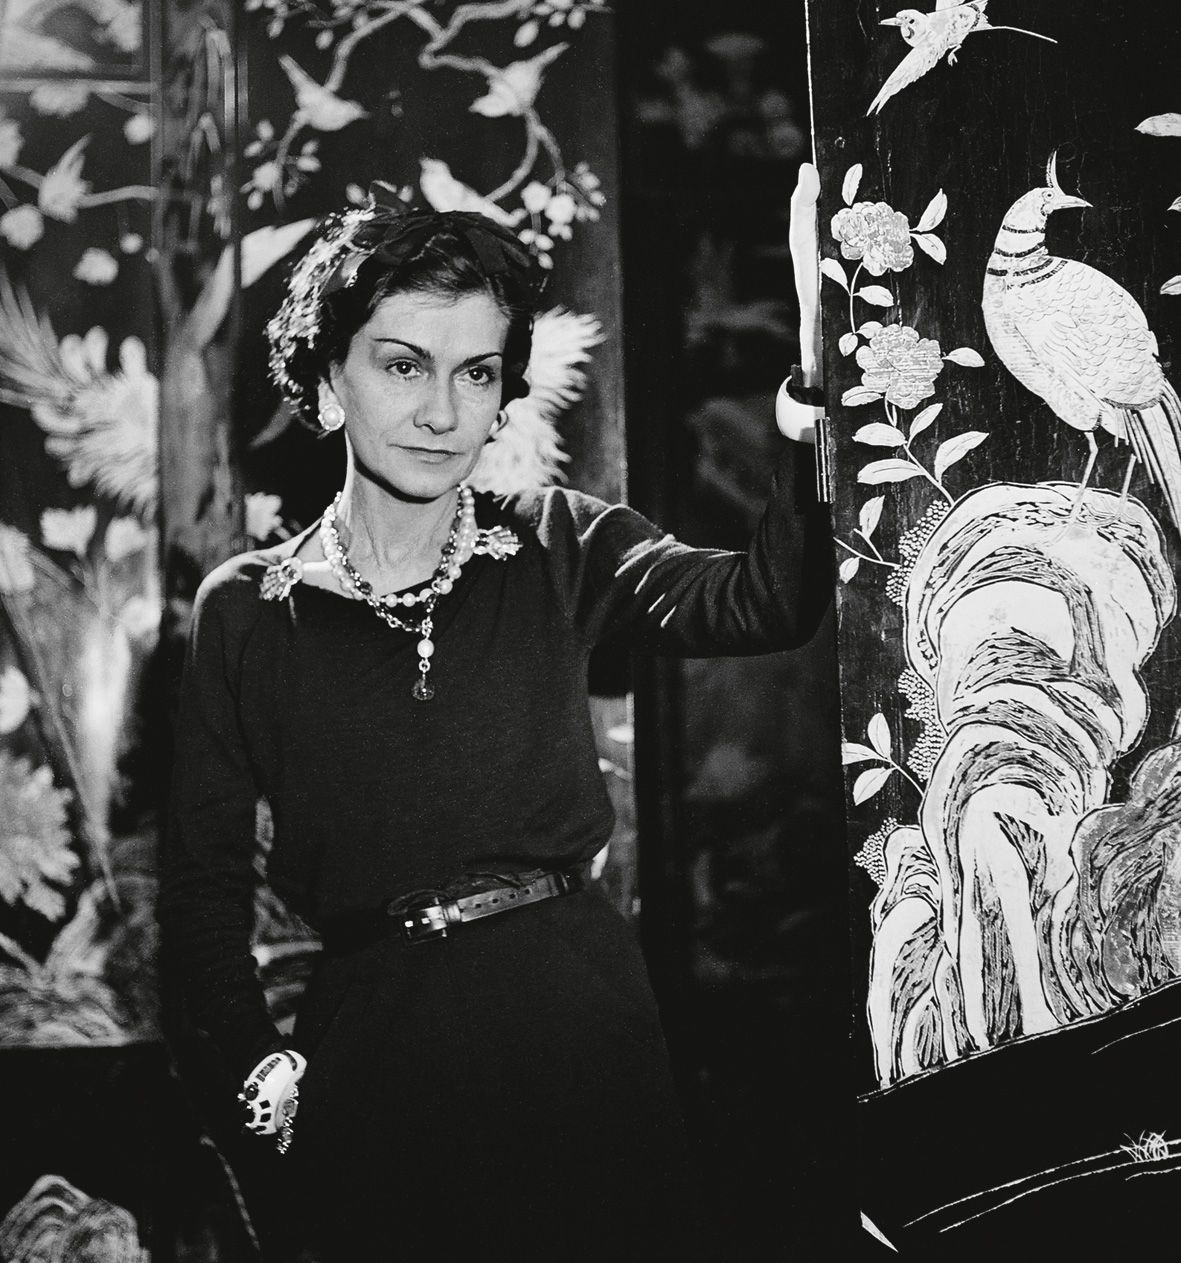 Coco Chanel, French couturier. Paris, 1937. LIP-69